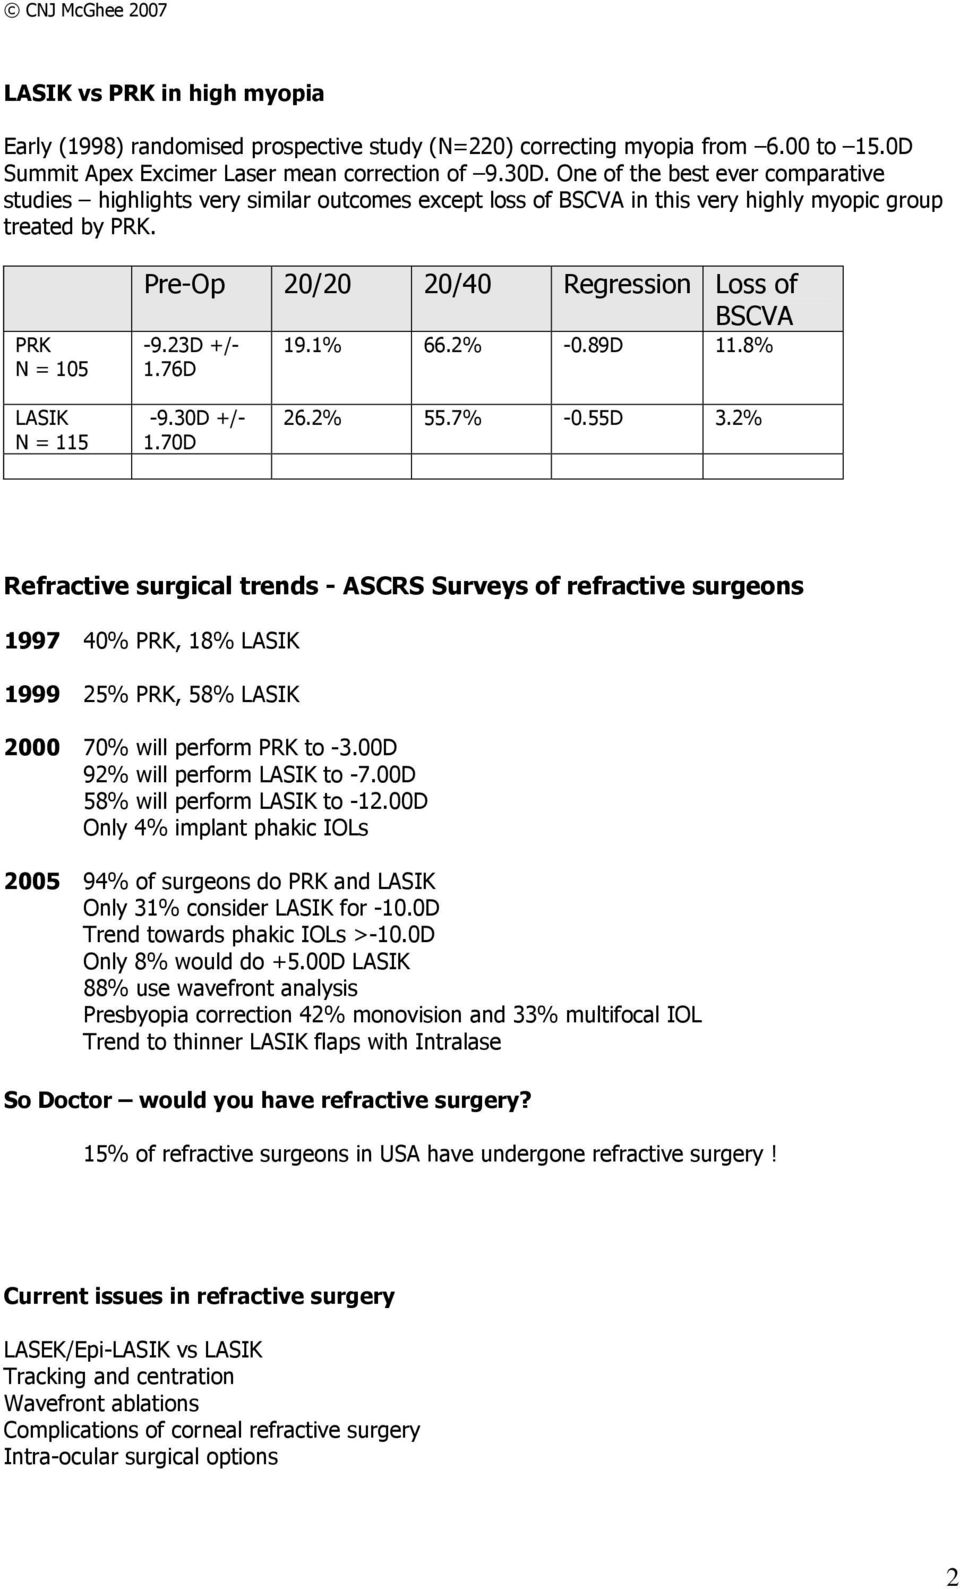 PRK N = 105 Pre-Op 20/20 20/40 Regression Loss of BSCVA -9.23D +/- 1.76D 19.1% 66.2% -0.89D 11.8% LASIK N = 115-9.30D +/- 1.70D 26.2% 55.7% -0.55D 3.